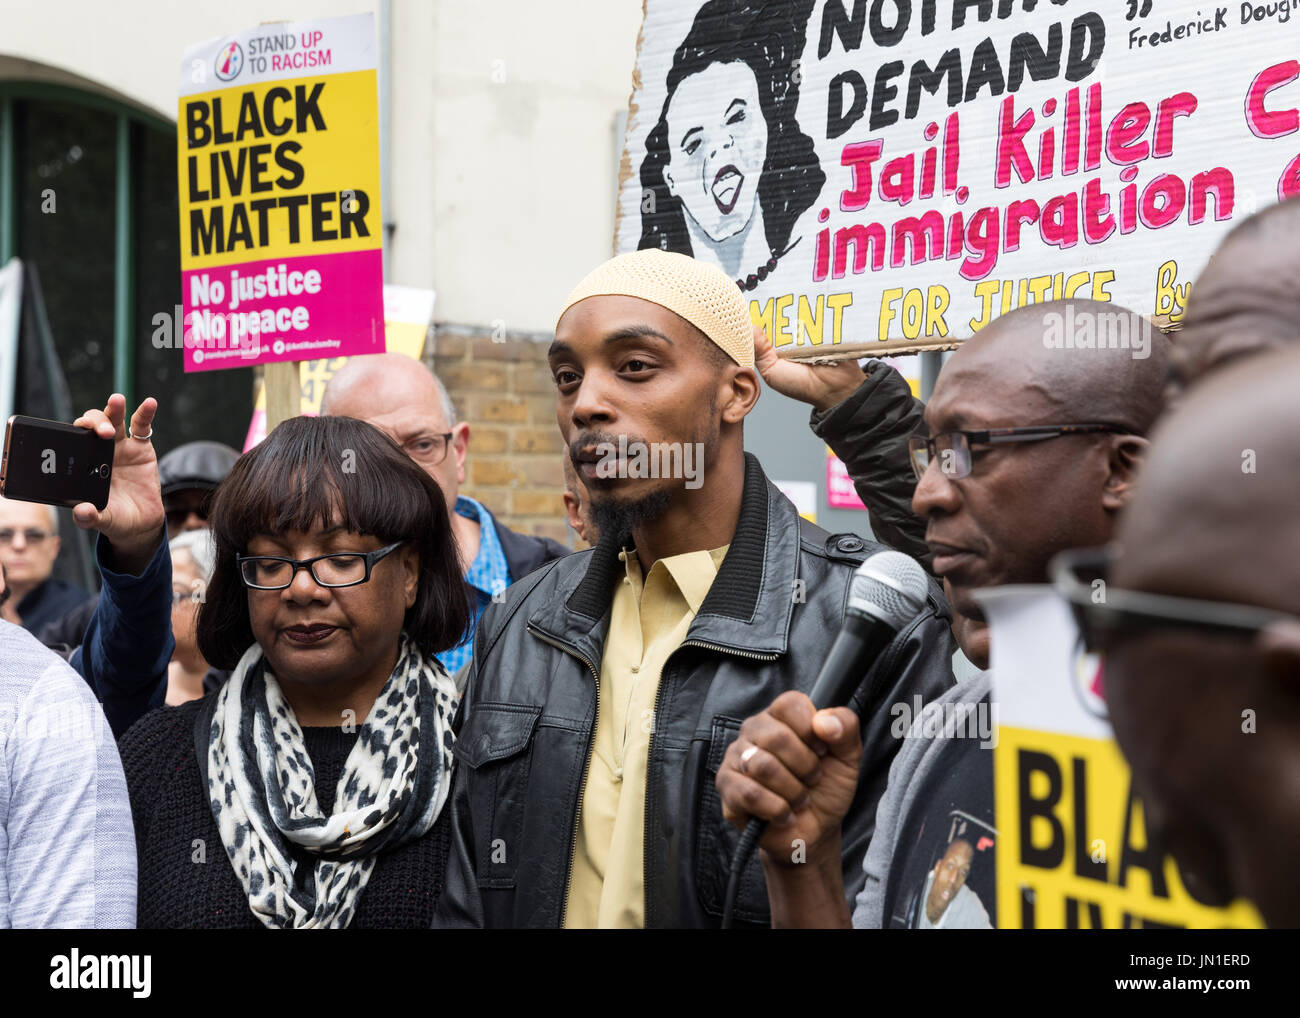 London, UK. 29th July, 2017. Vigil and protest for Rashan Charles outside Stoke Newington Police Station. The fathers - Stock Image